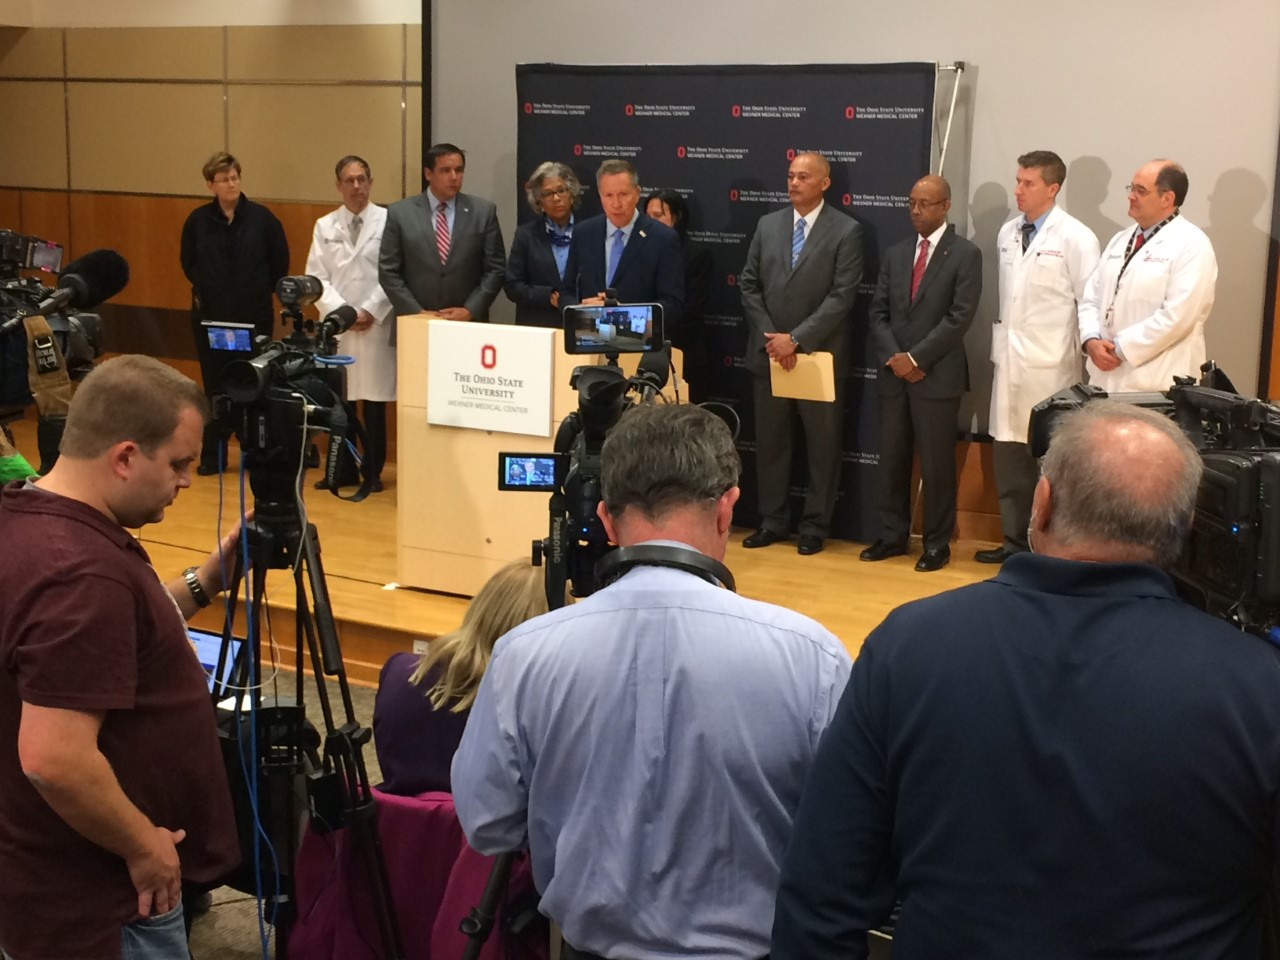 Ohio Governor John Kasich at a press conference at OSU Wexner Medical Center regarding the campus attack Monday morning (WSYX/WTTE)